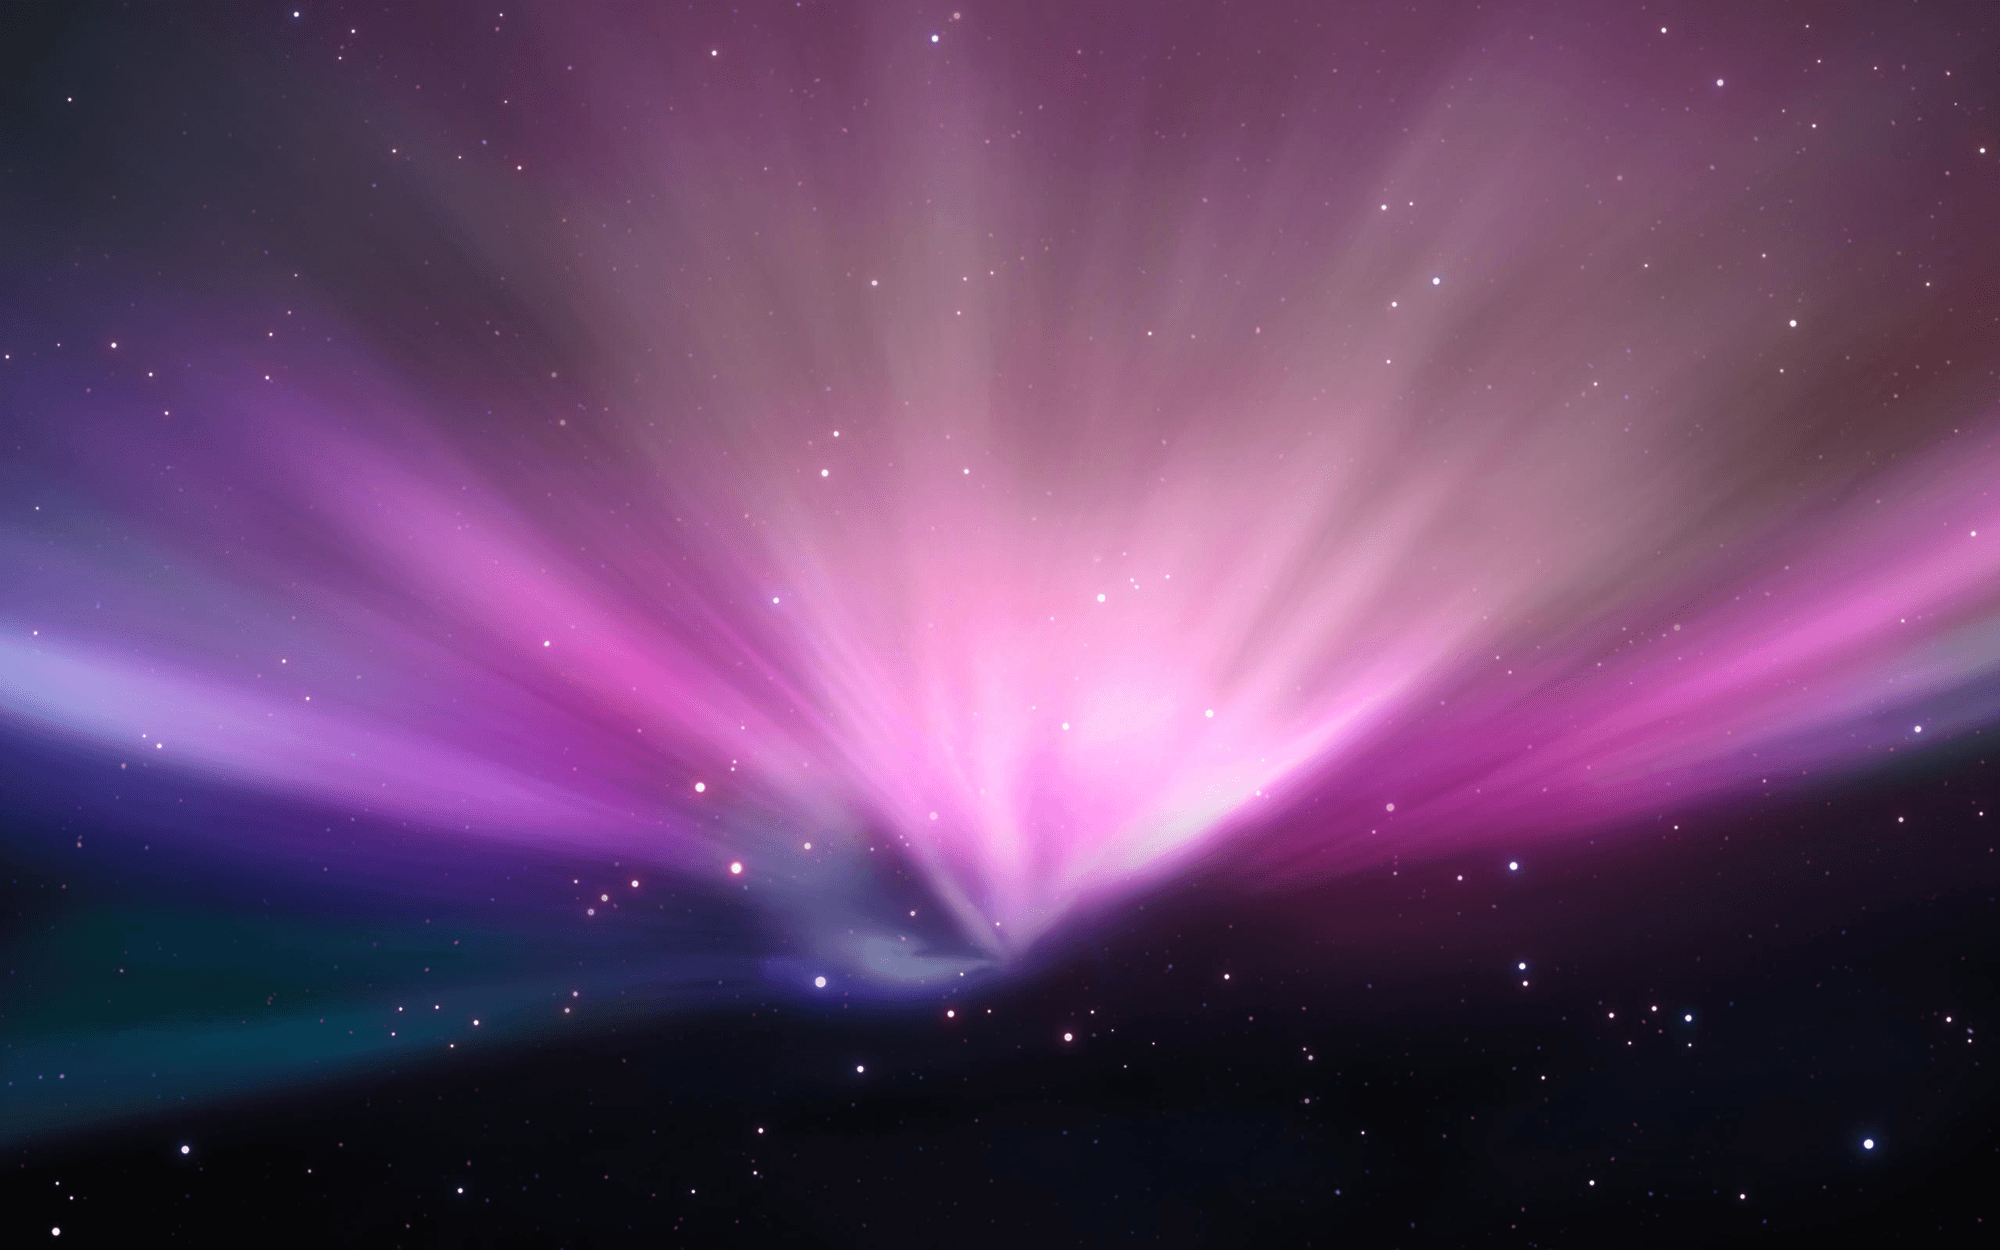 apple wallpapers desktop - wallpaper cave